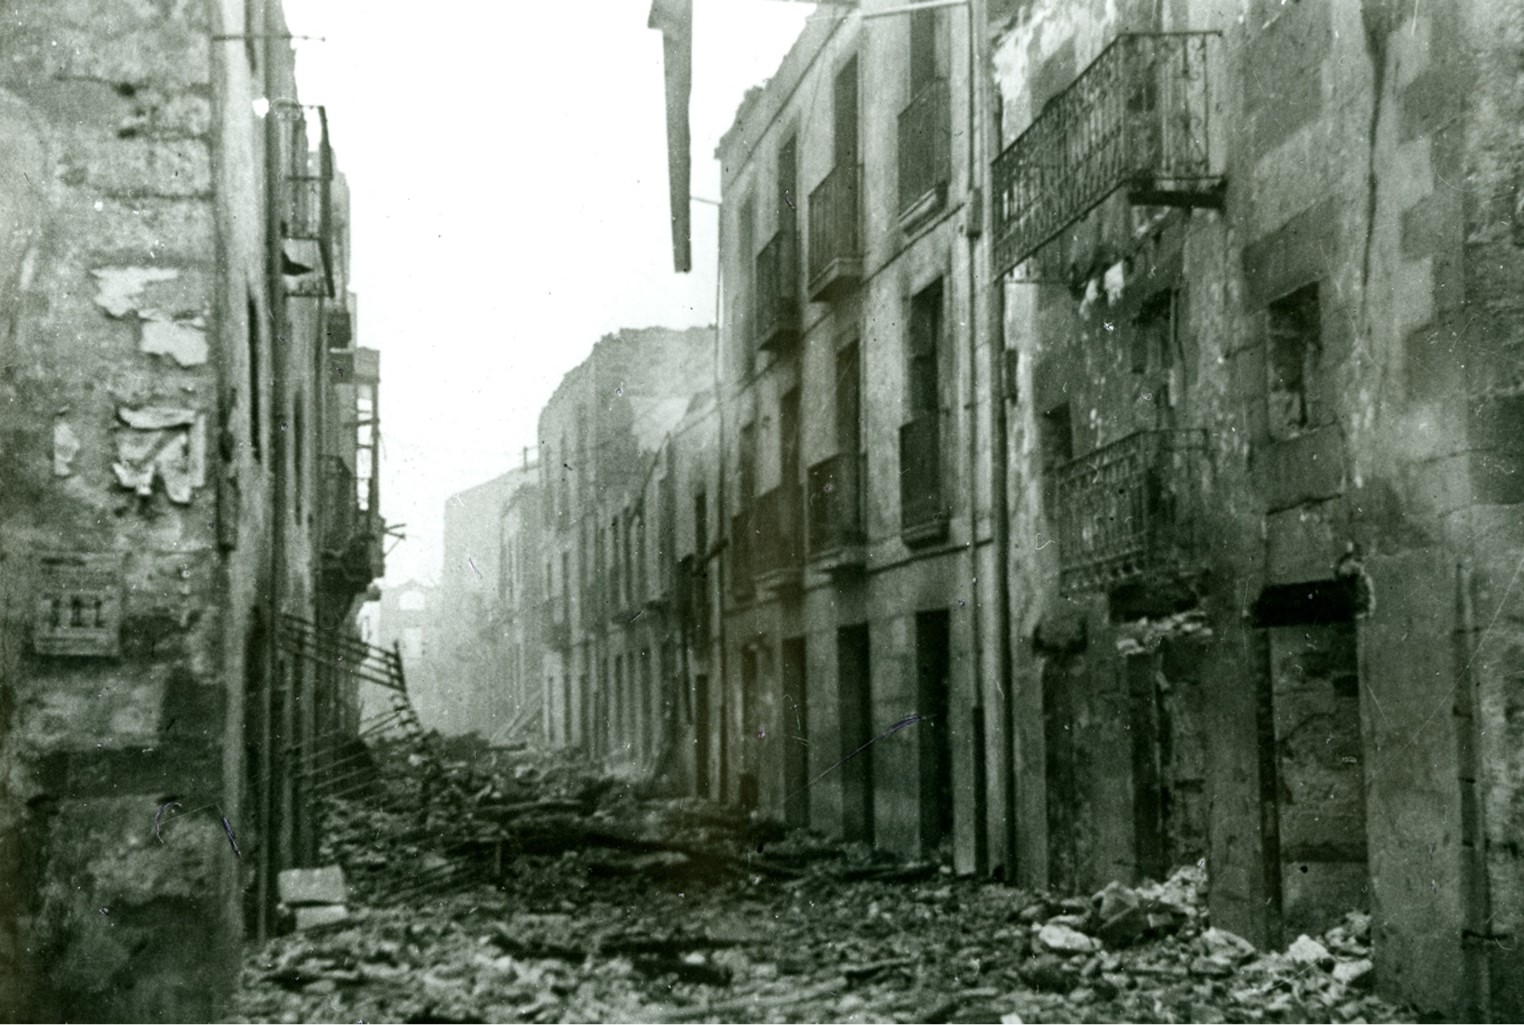 Destroyed streets in Guernica, Spain.